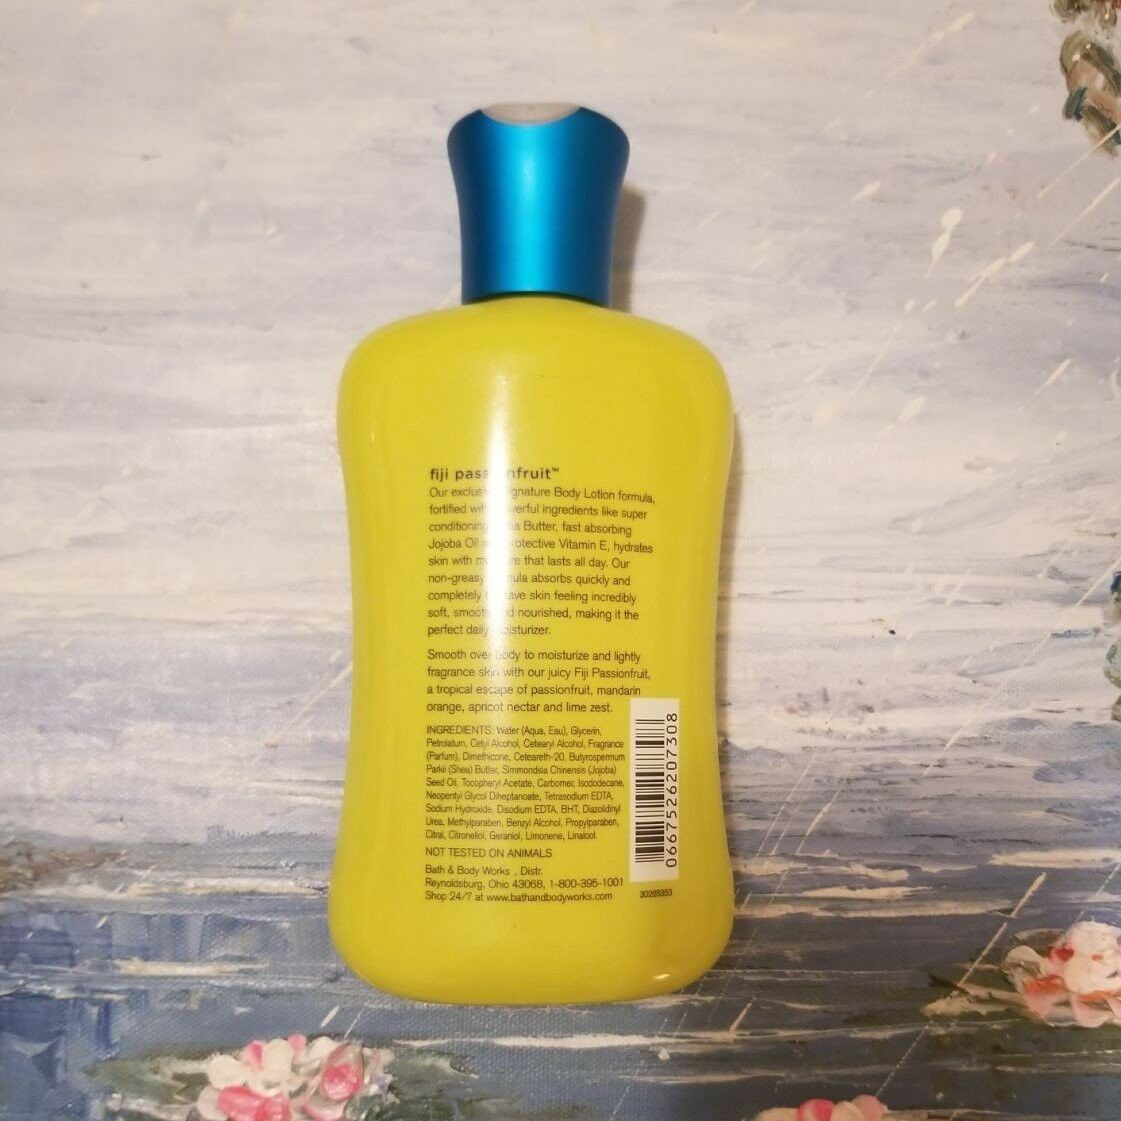 Bath and Body Works Fiji Passionfruit Body Lotion